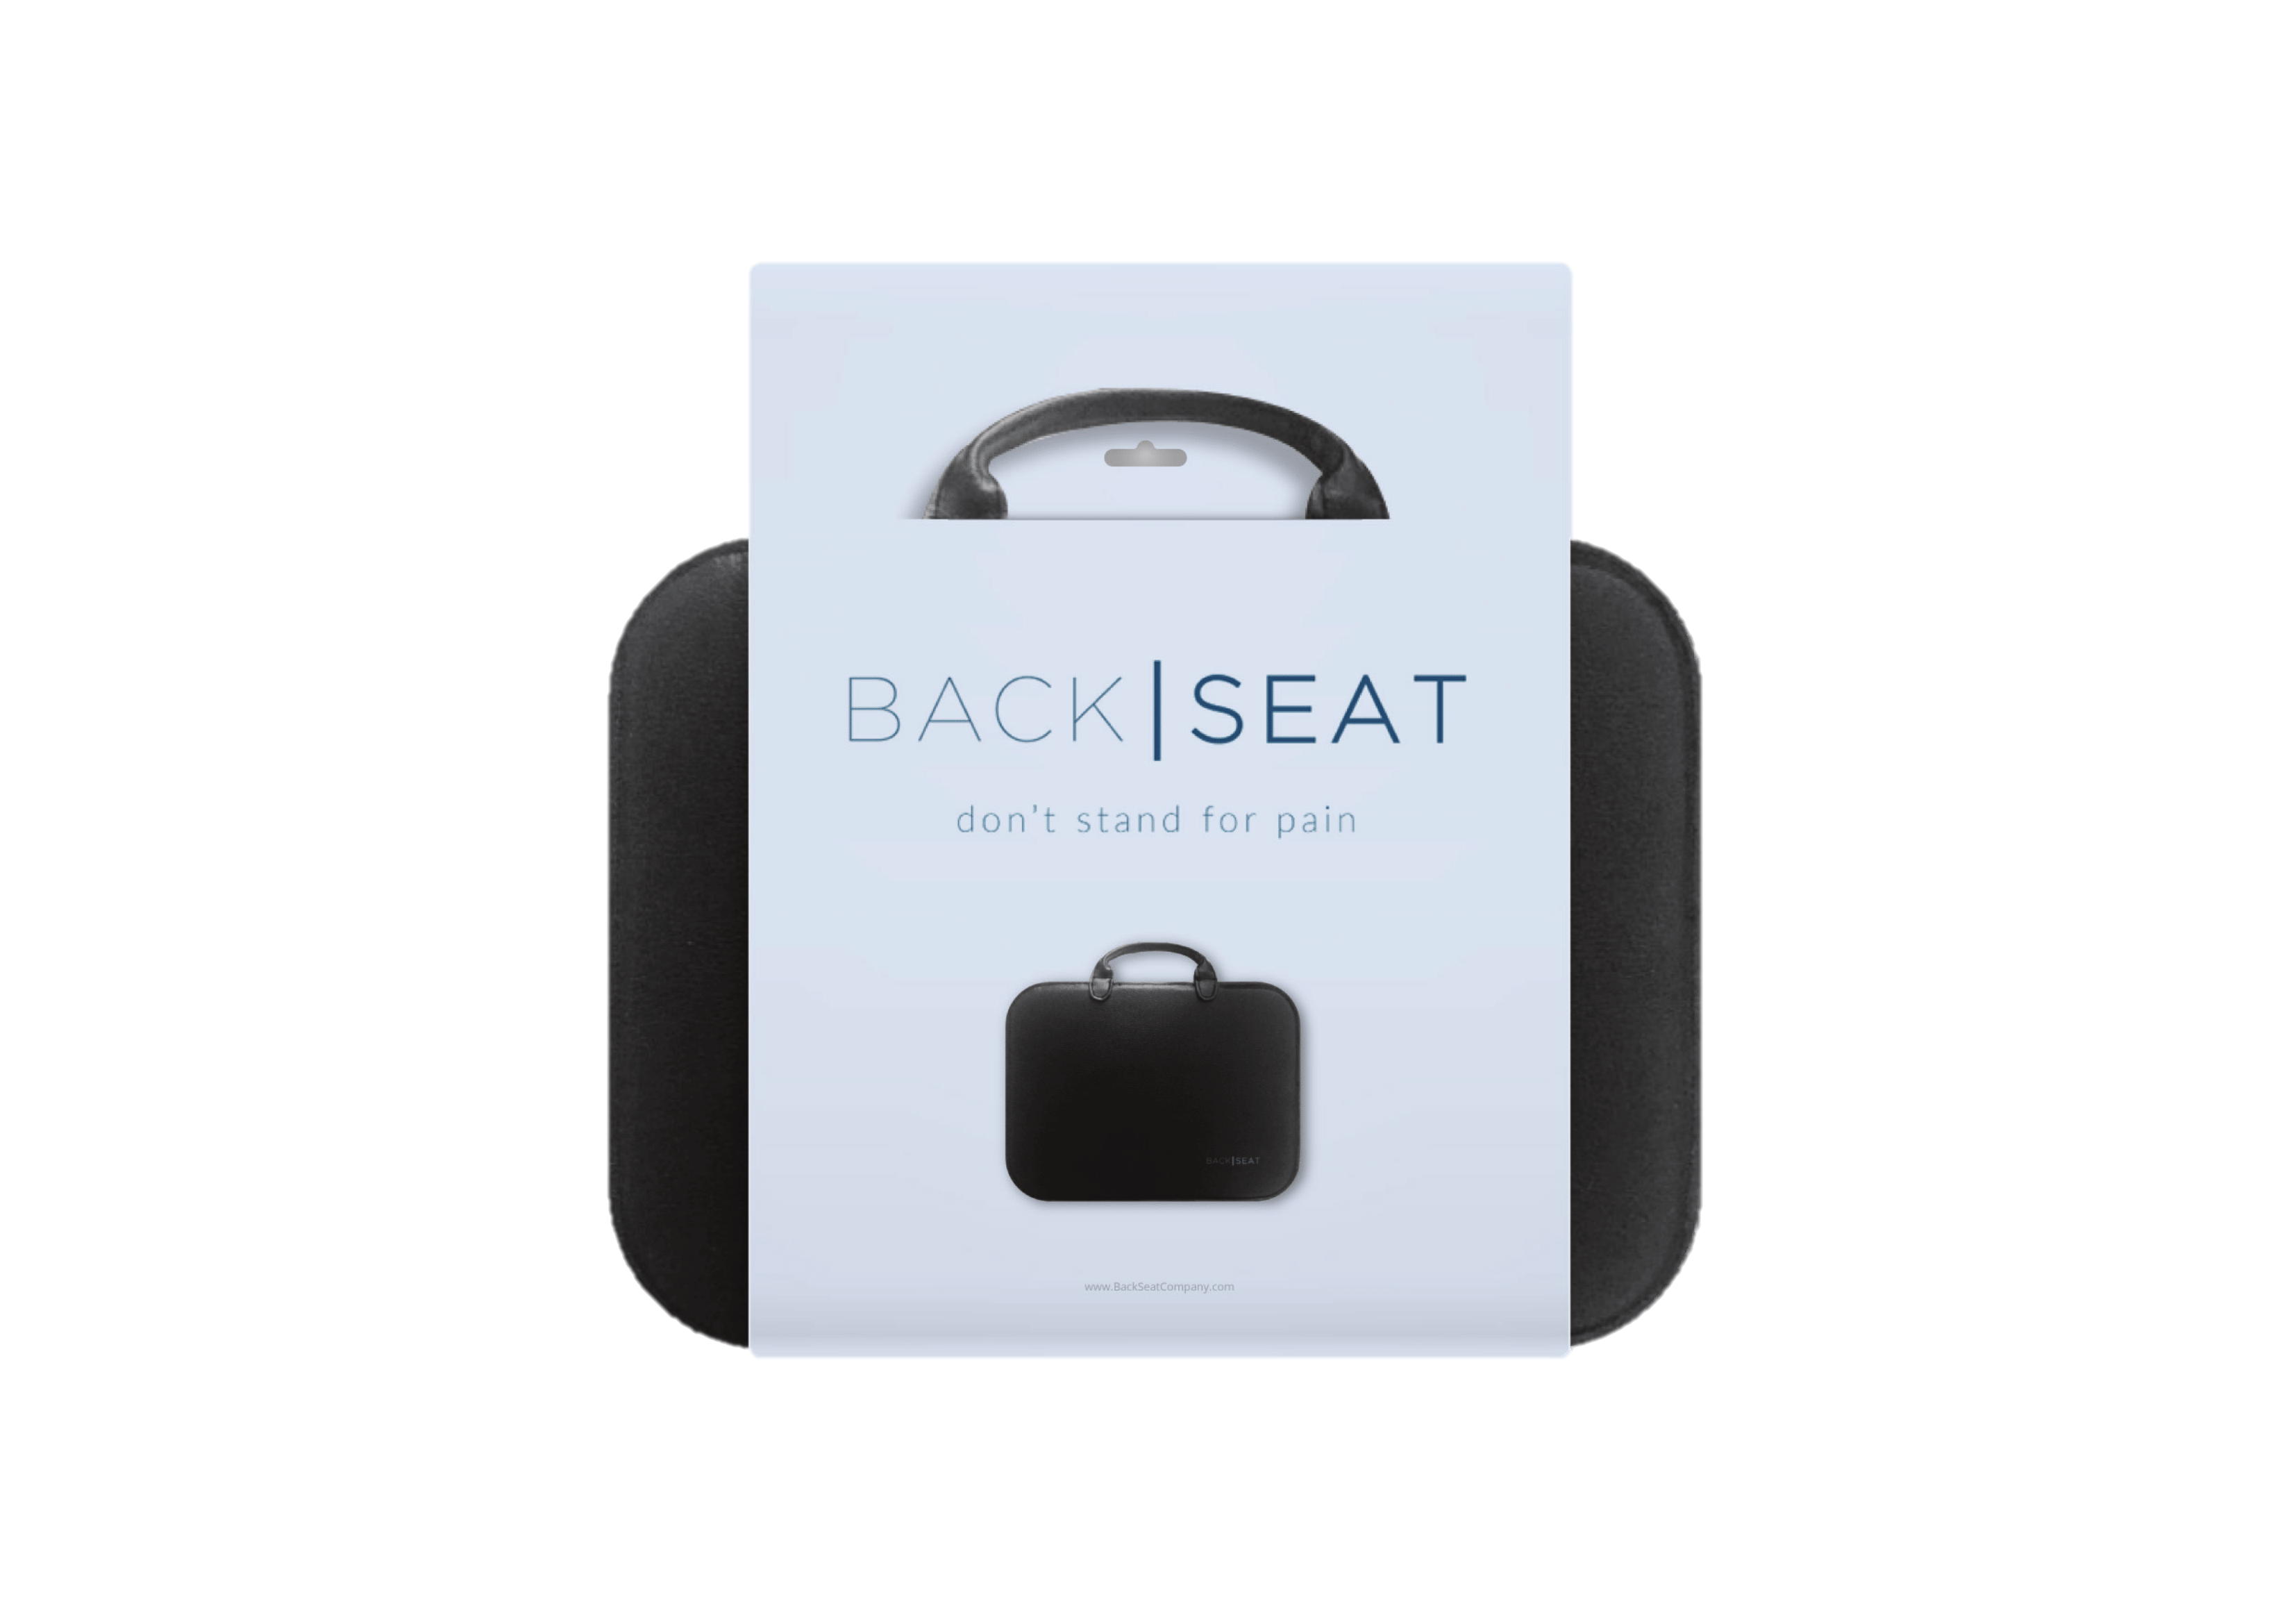 Buy A Backseat Today Don T Stand For Pain